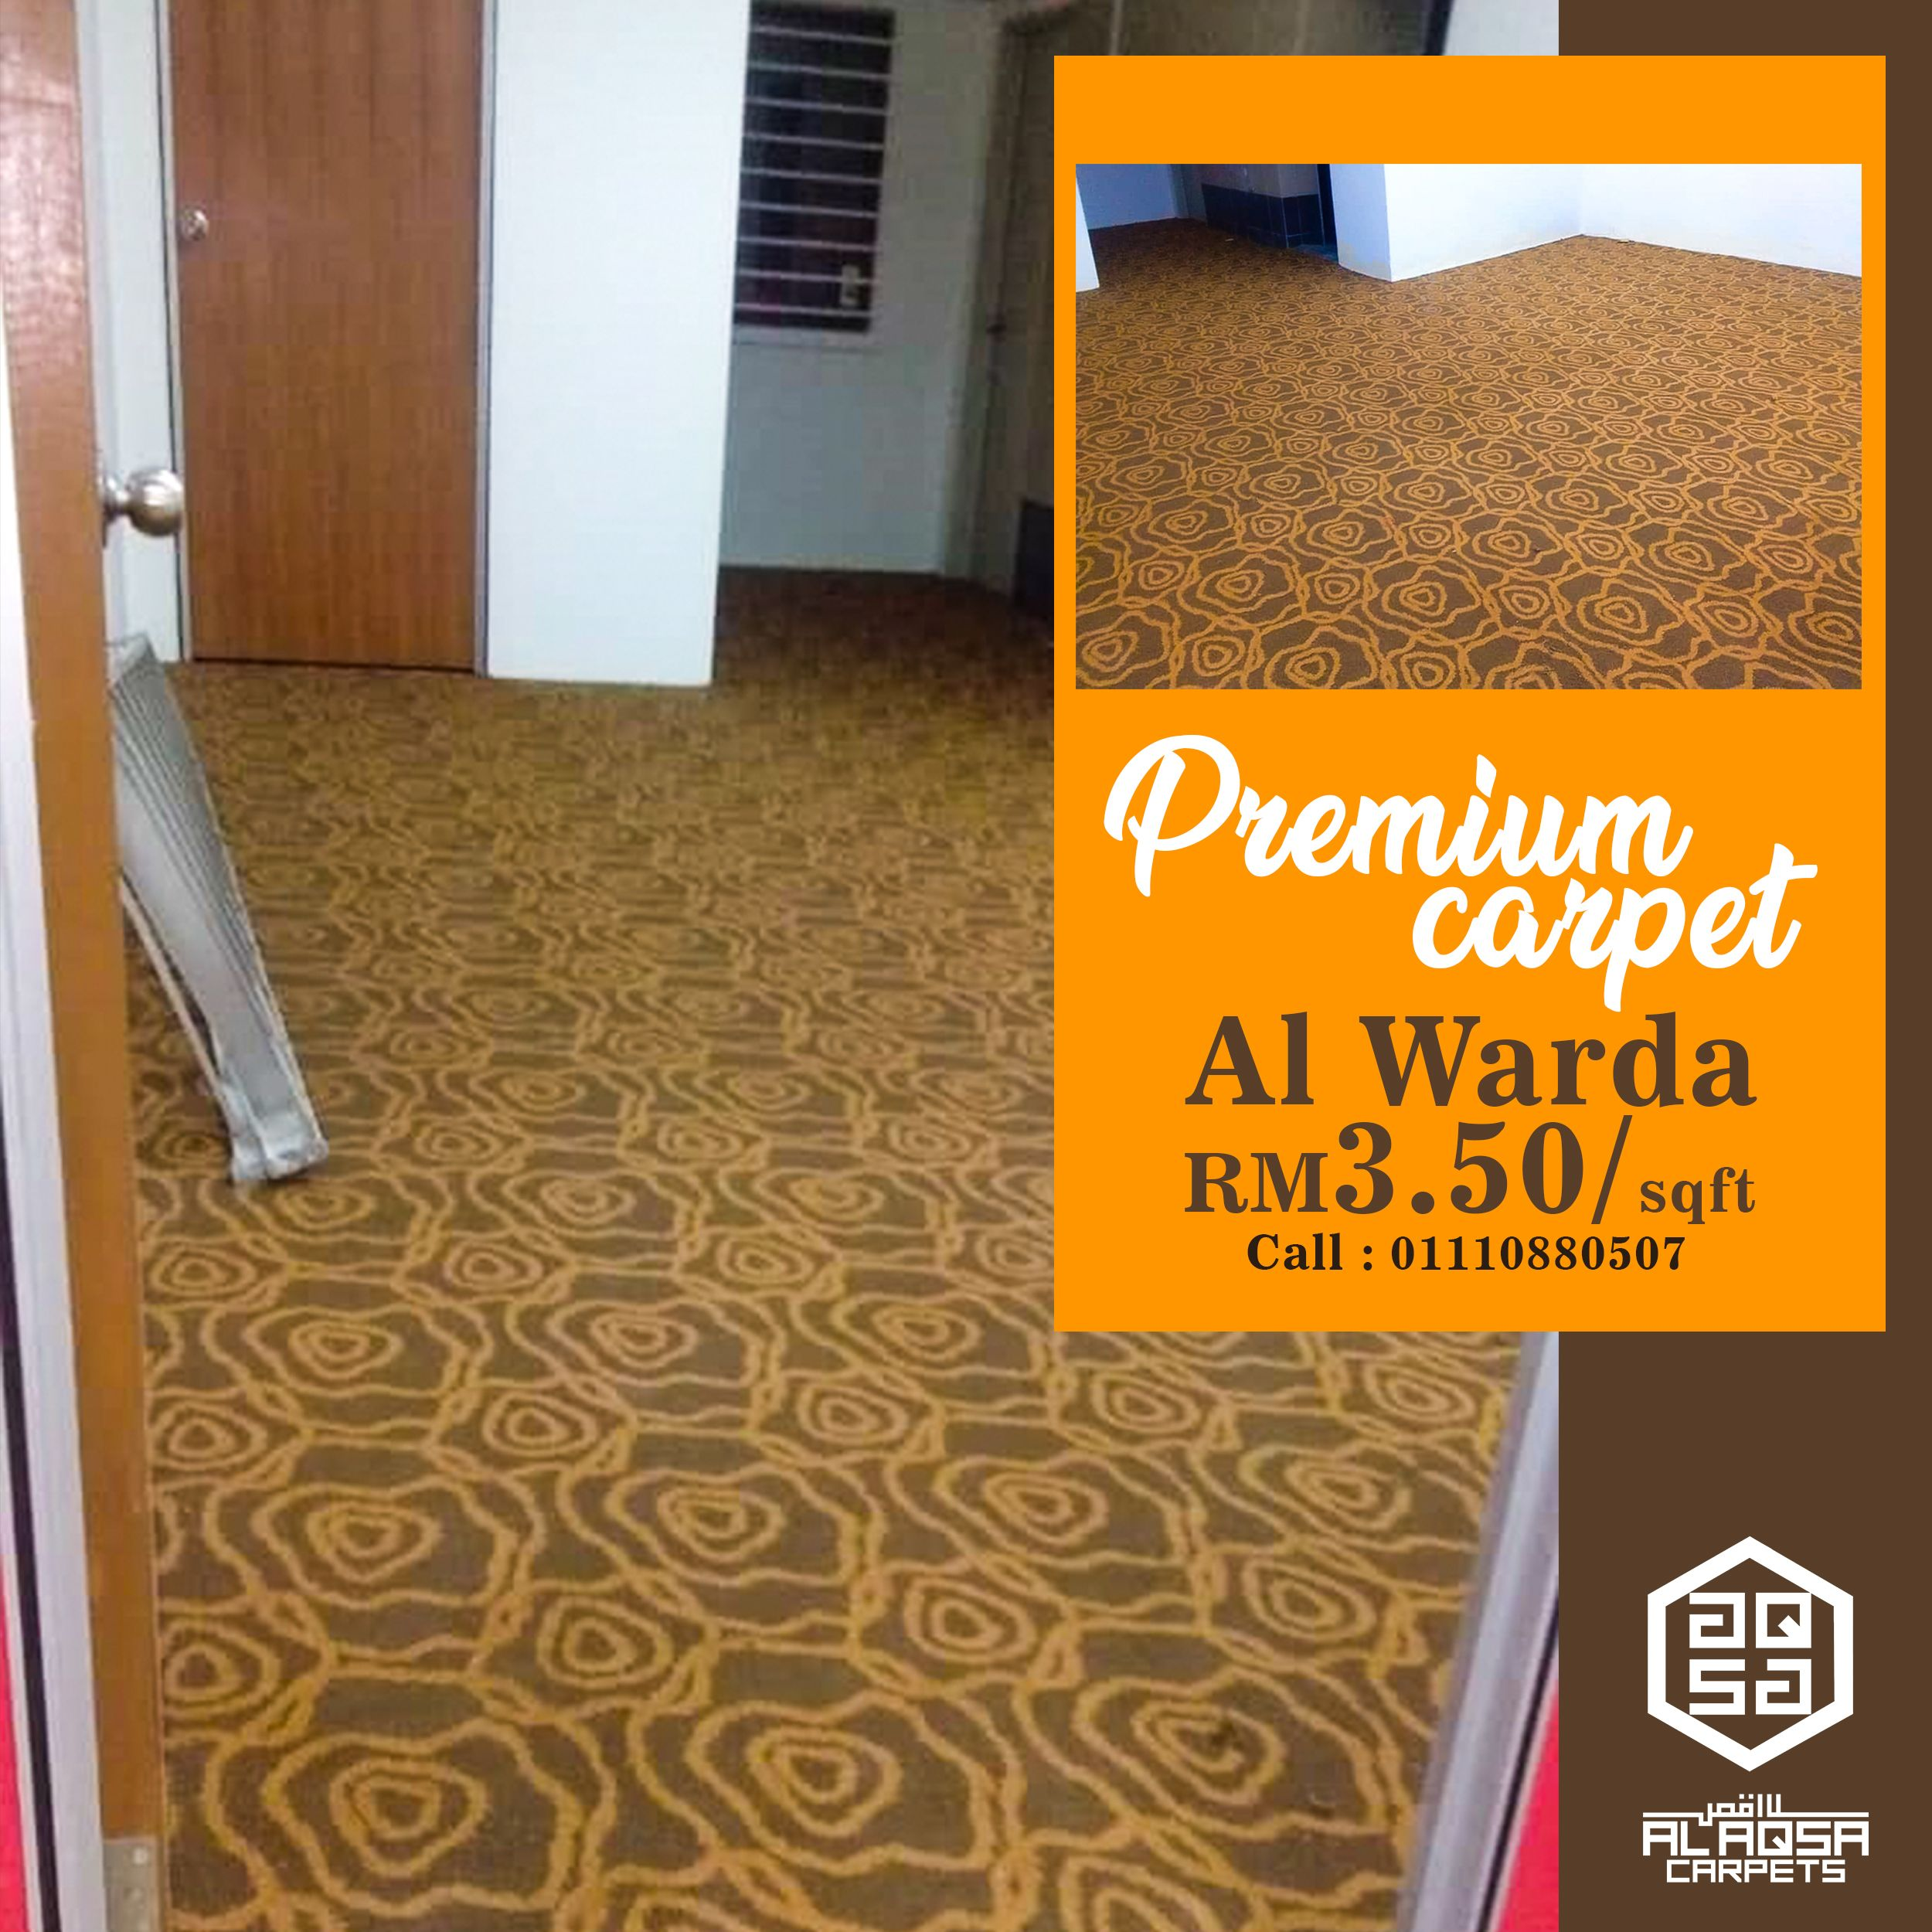 Select a carpet that meets your needs. Best Premium Carpet